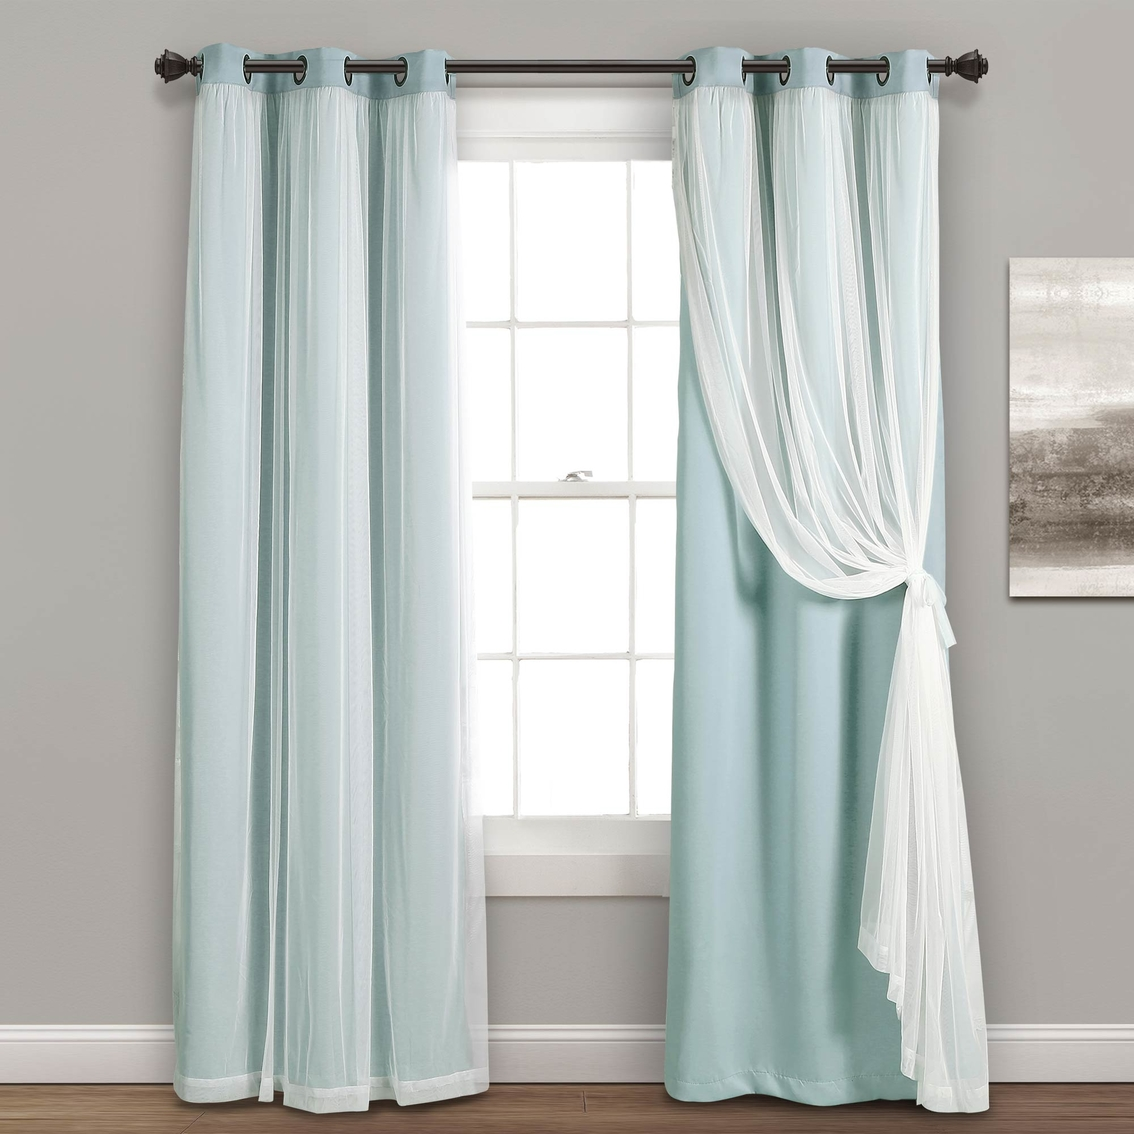 Lush Decor Grommet Sheer Panels With Insulated Blackout